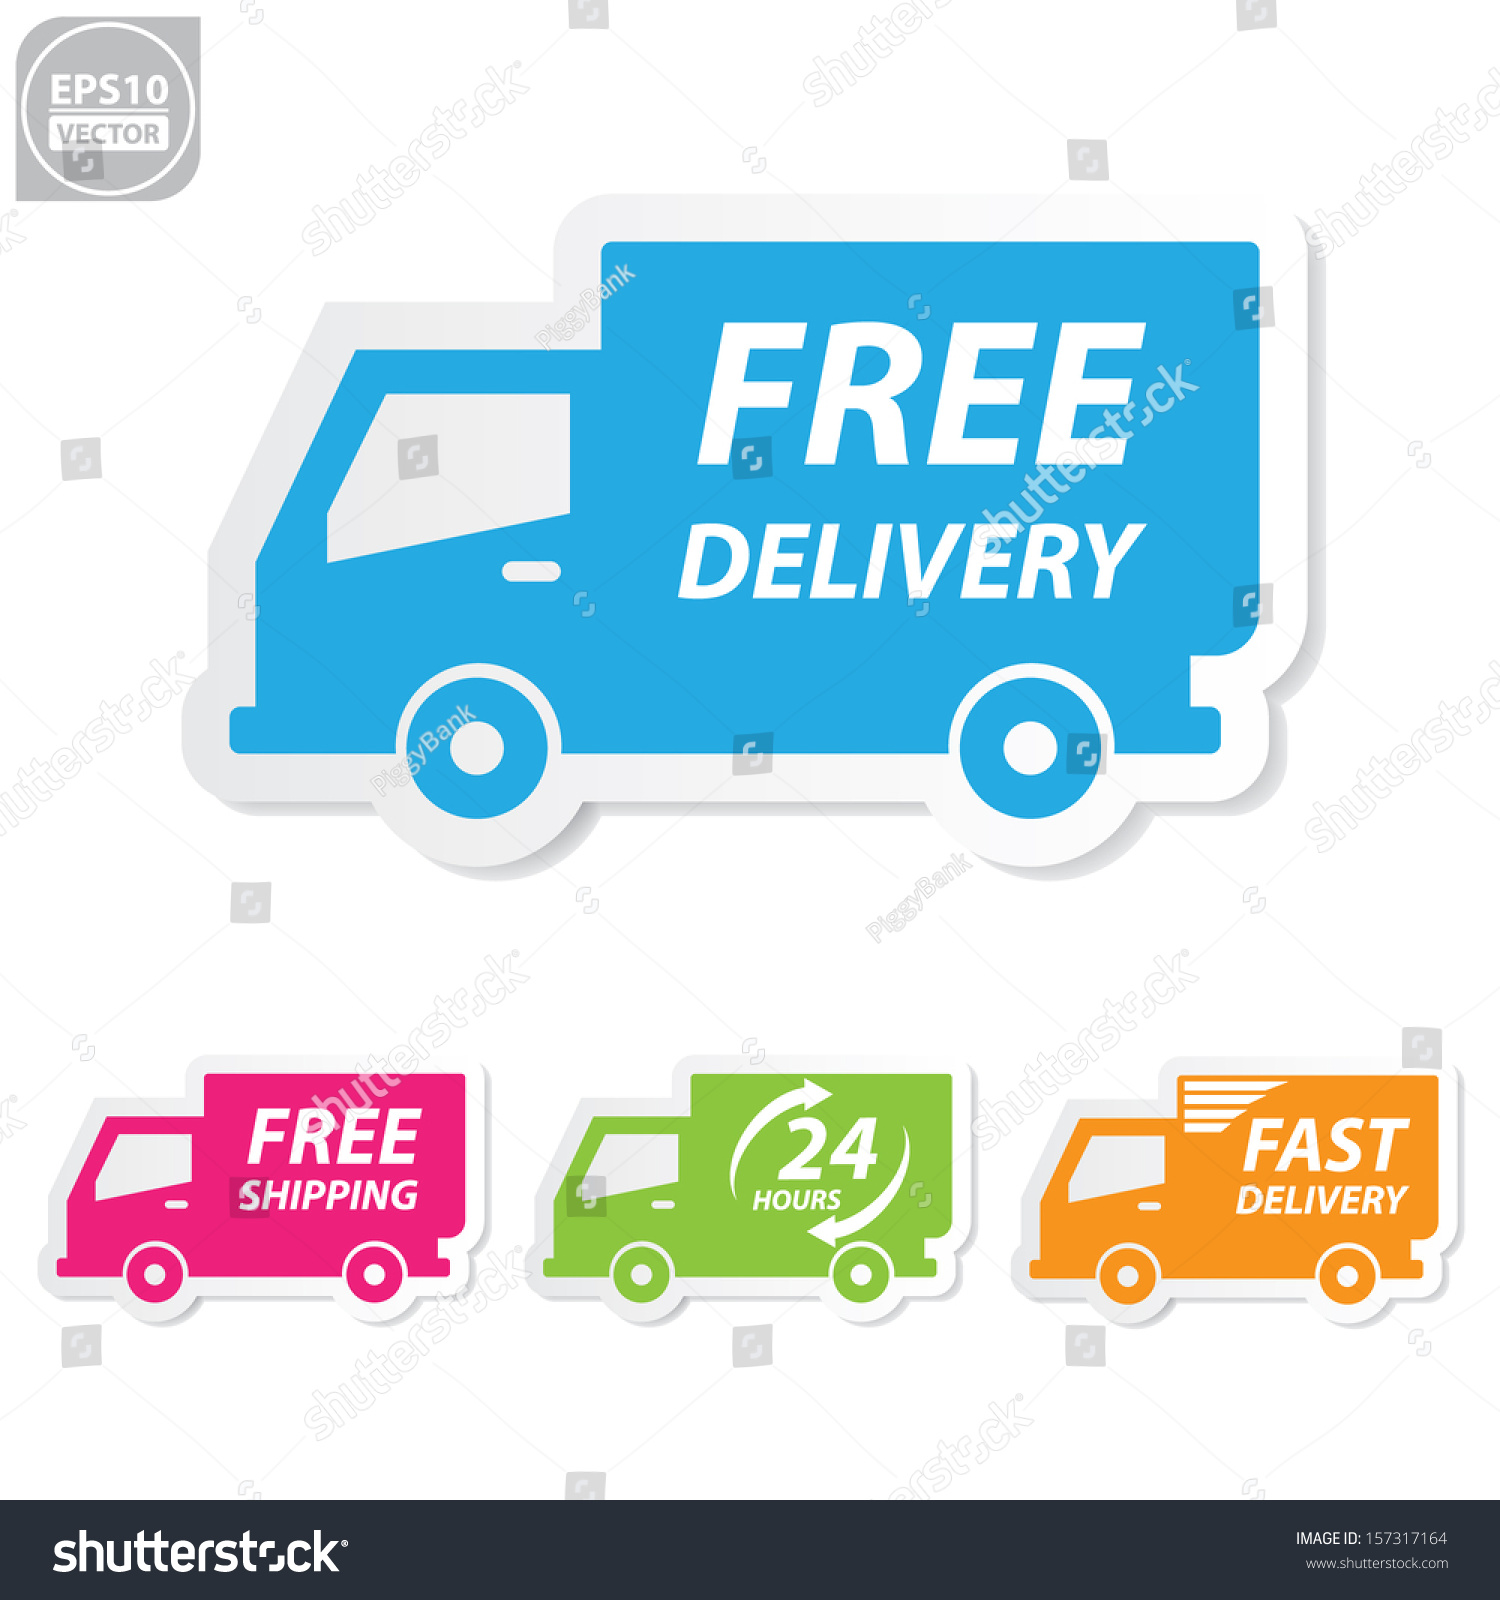 Shipping Delivery: Vectorfree Delivery Free Shipping 24 Hour Stock Vector